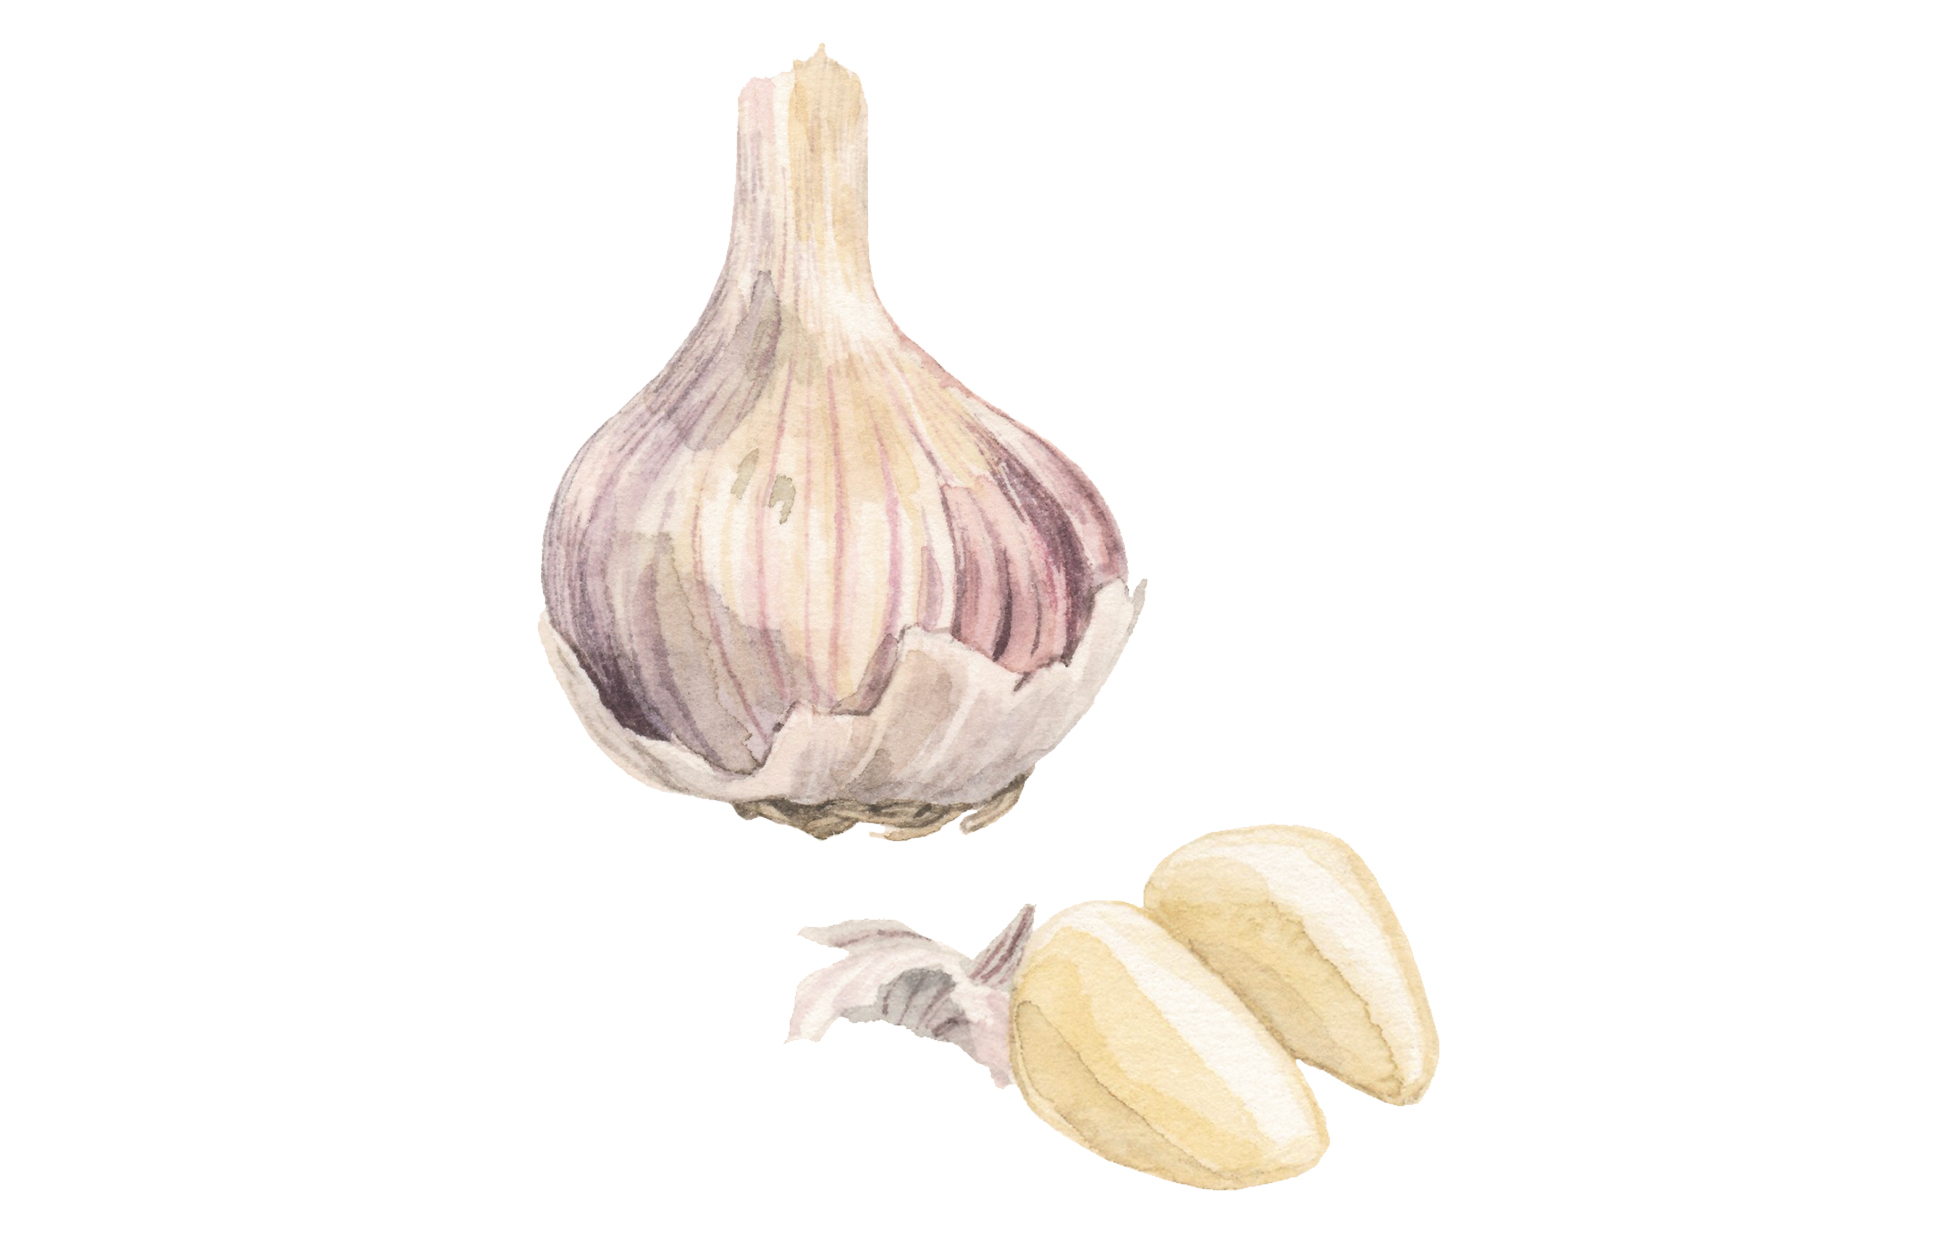 Illustration of garlic head and cloves